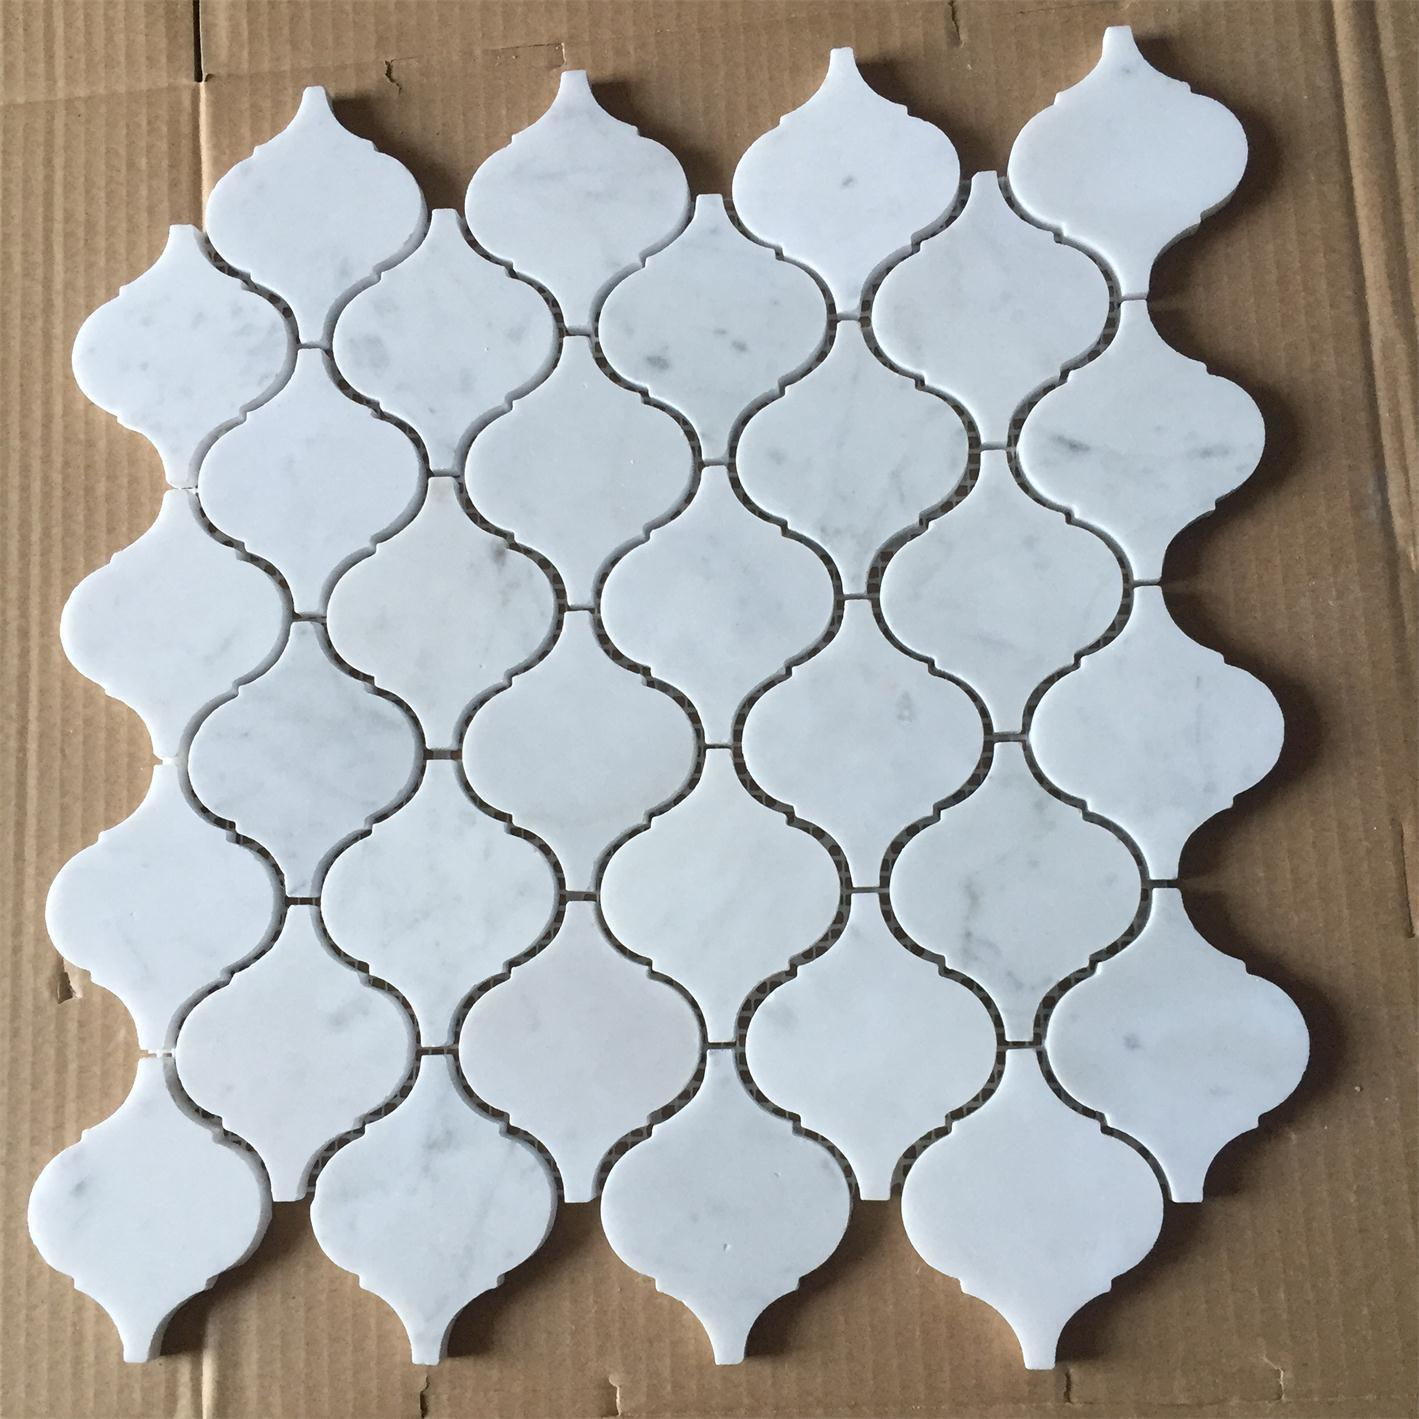 China Bianco Carrara White Marble Granite Stone Mosaic for Bathroom Wall